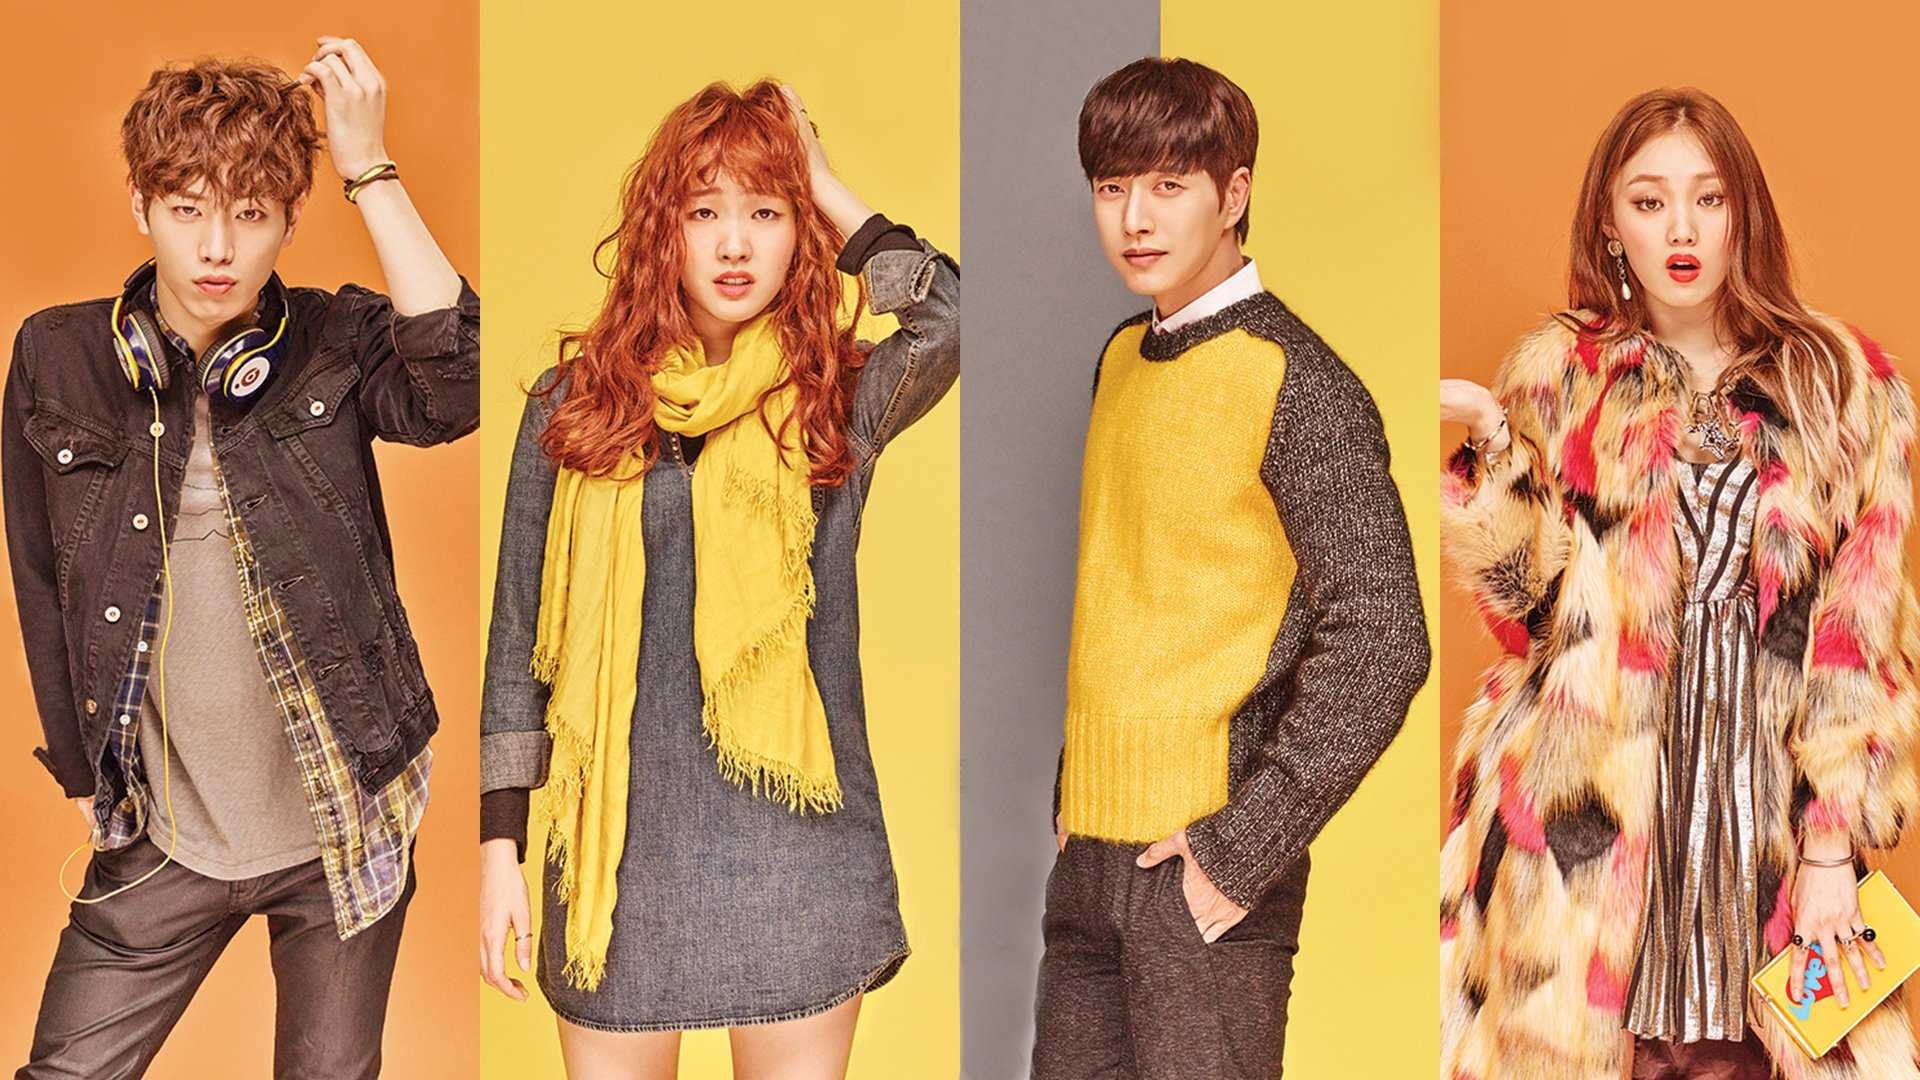 Bae Suzy - Cheese in the Trap (2016)